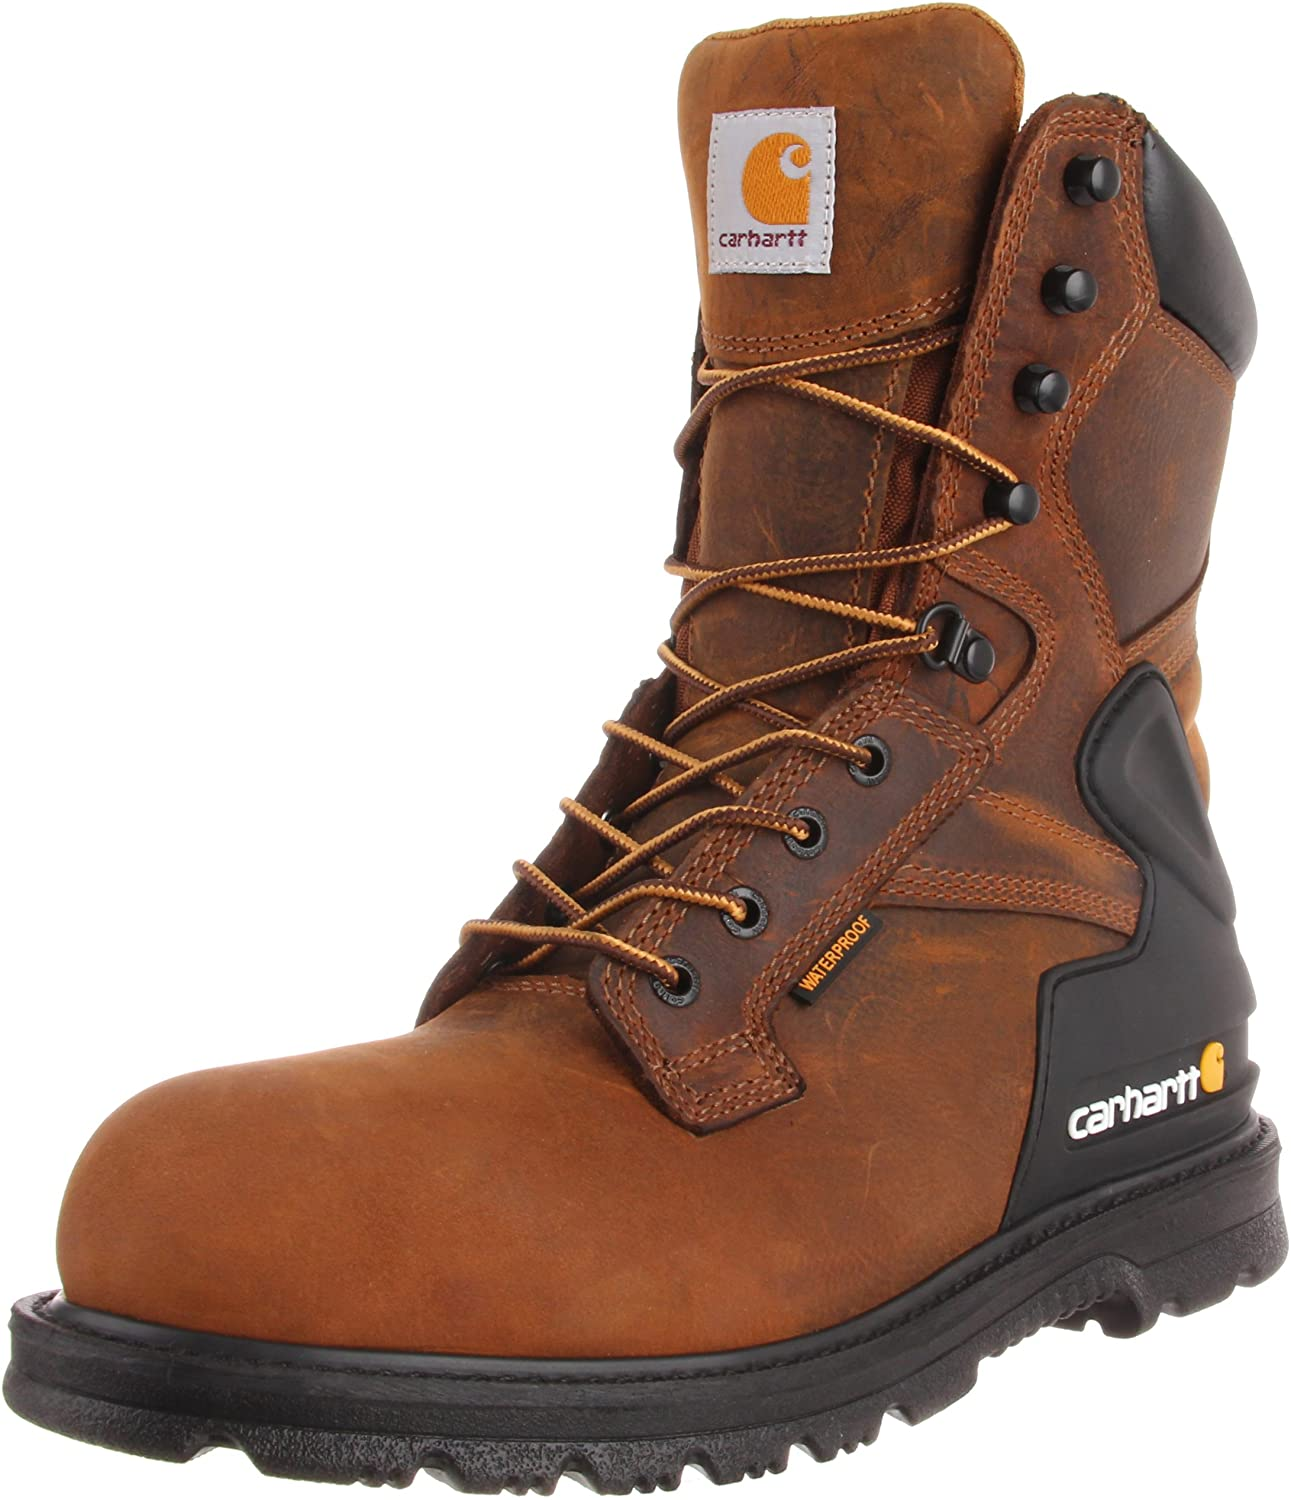 Things to Consider When Buying Quality Boots for Outdoors